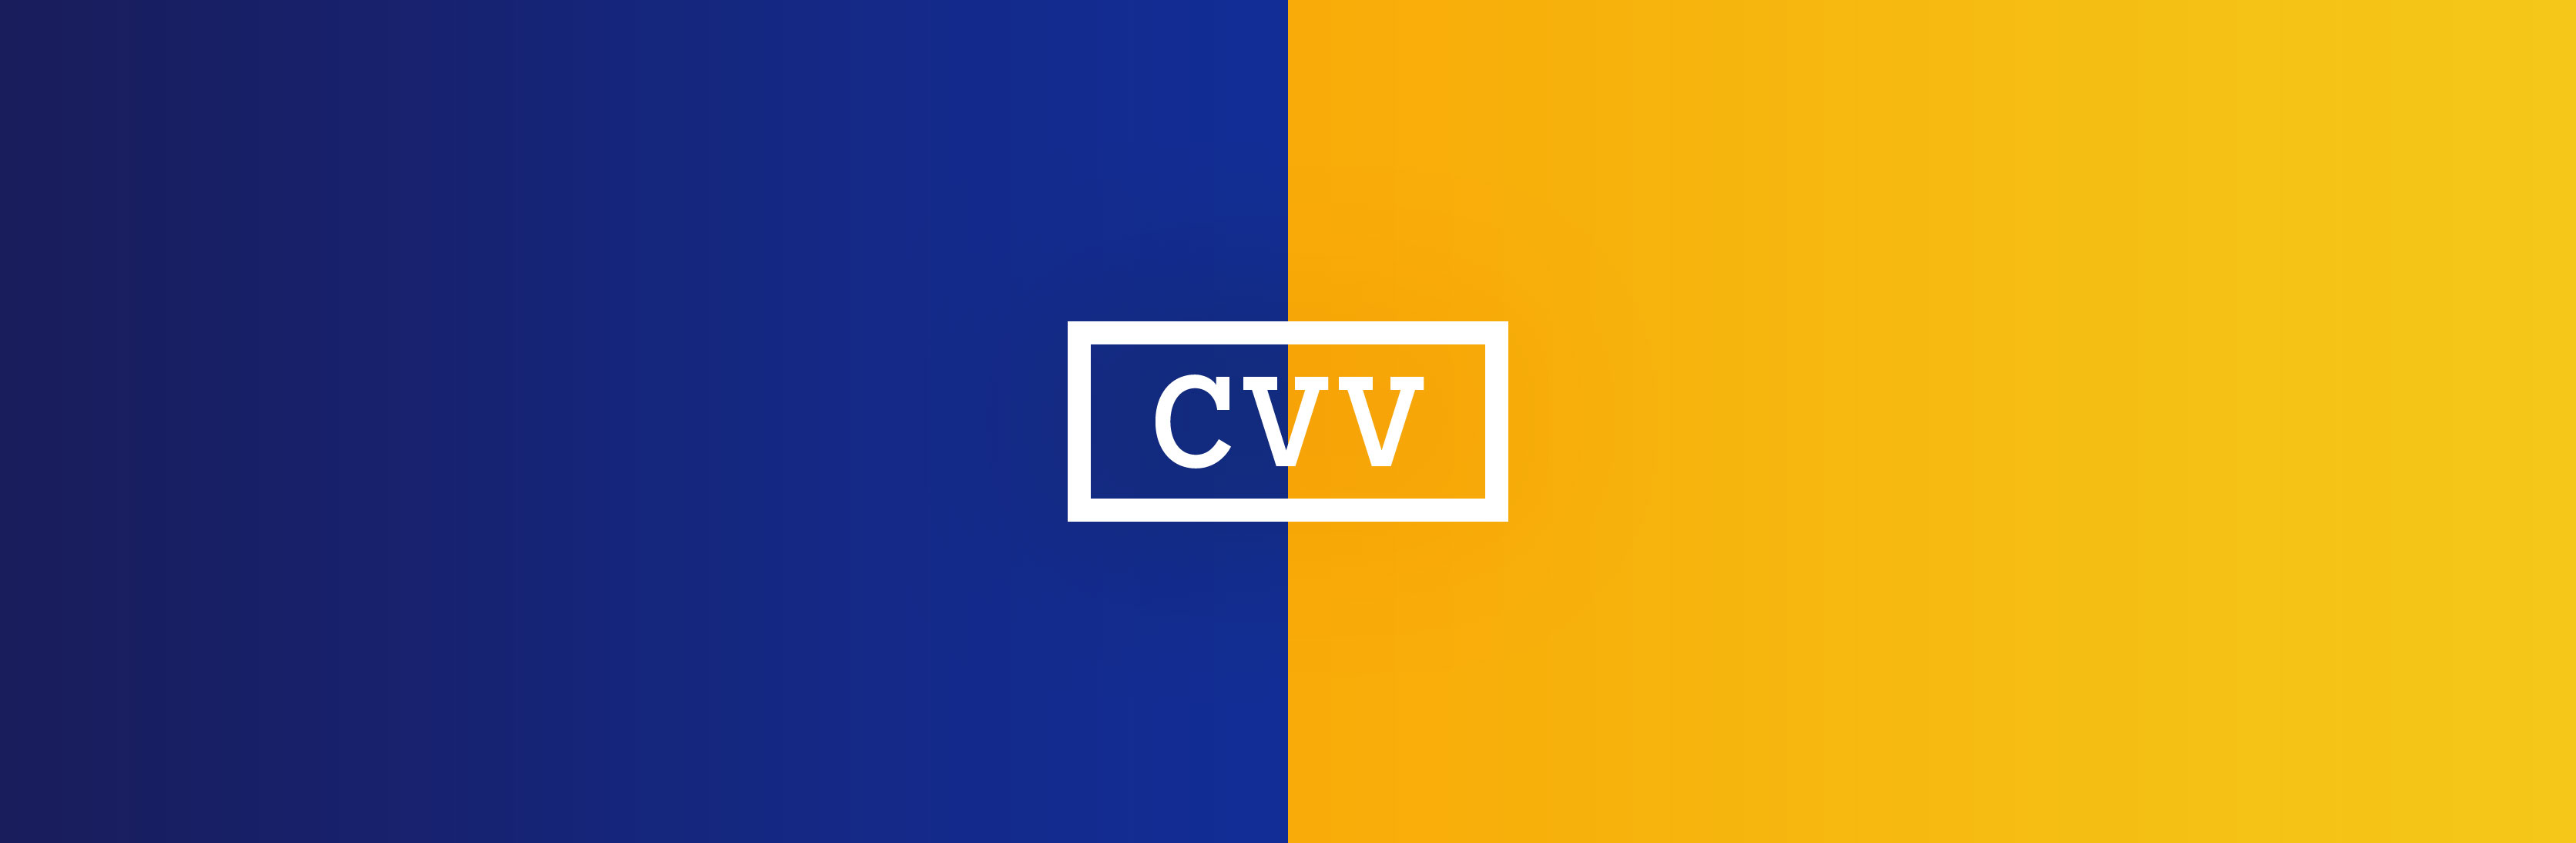 Visa Compliance: Regional CVV Requirements for Merchants